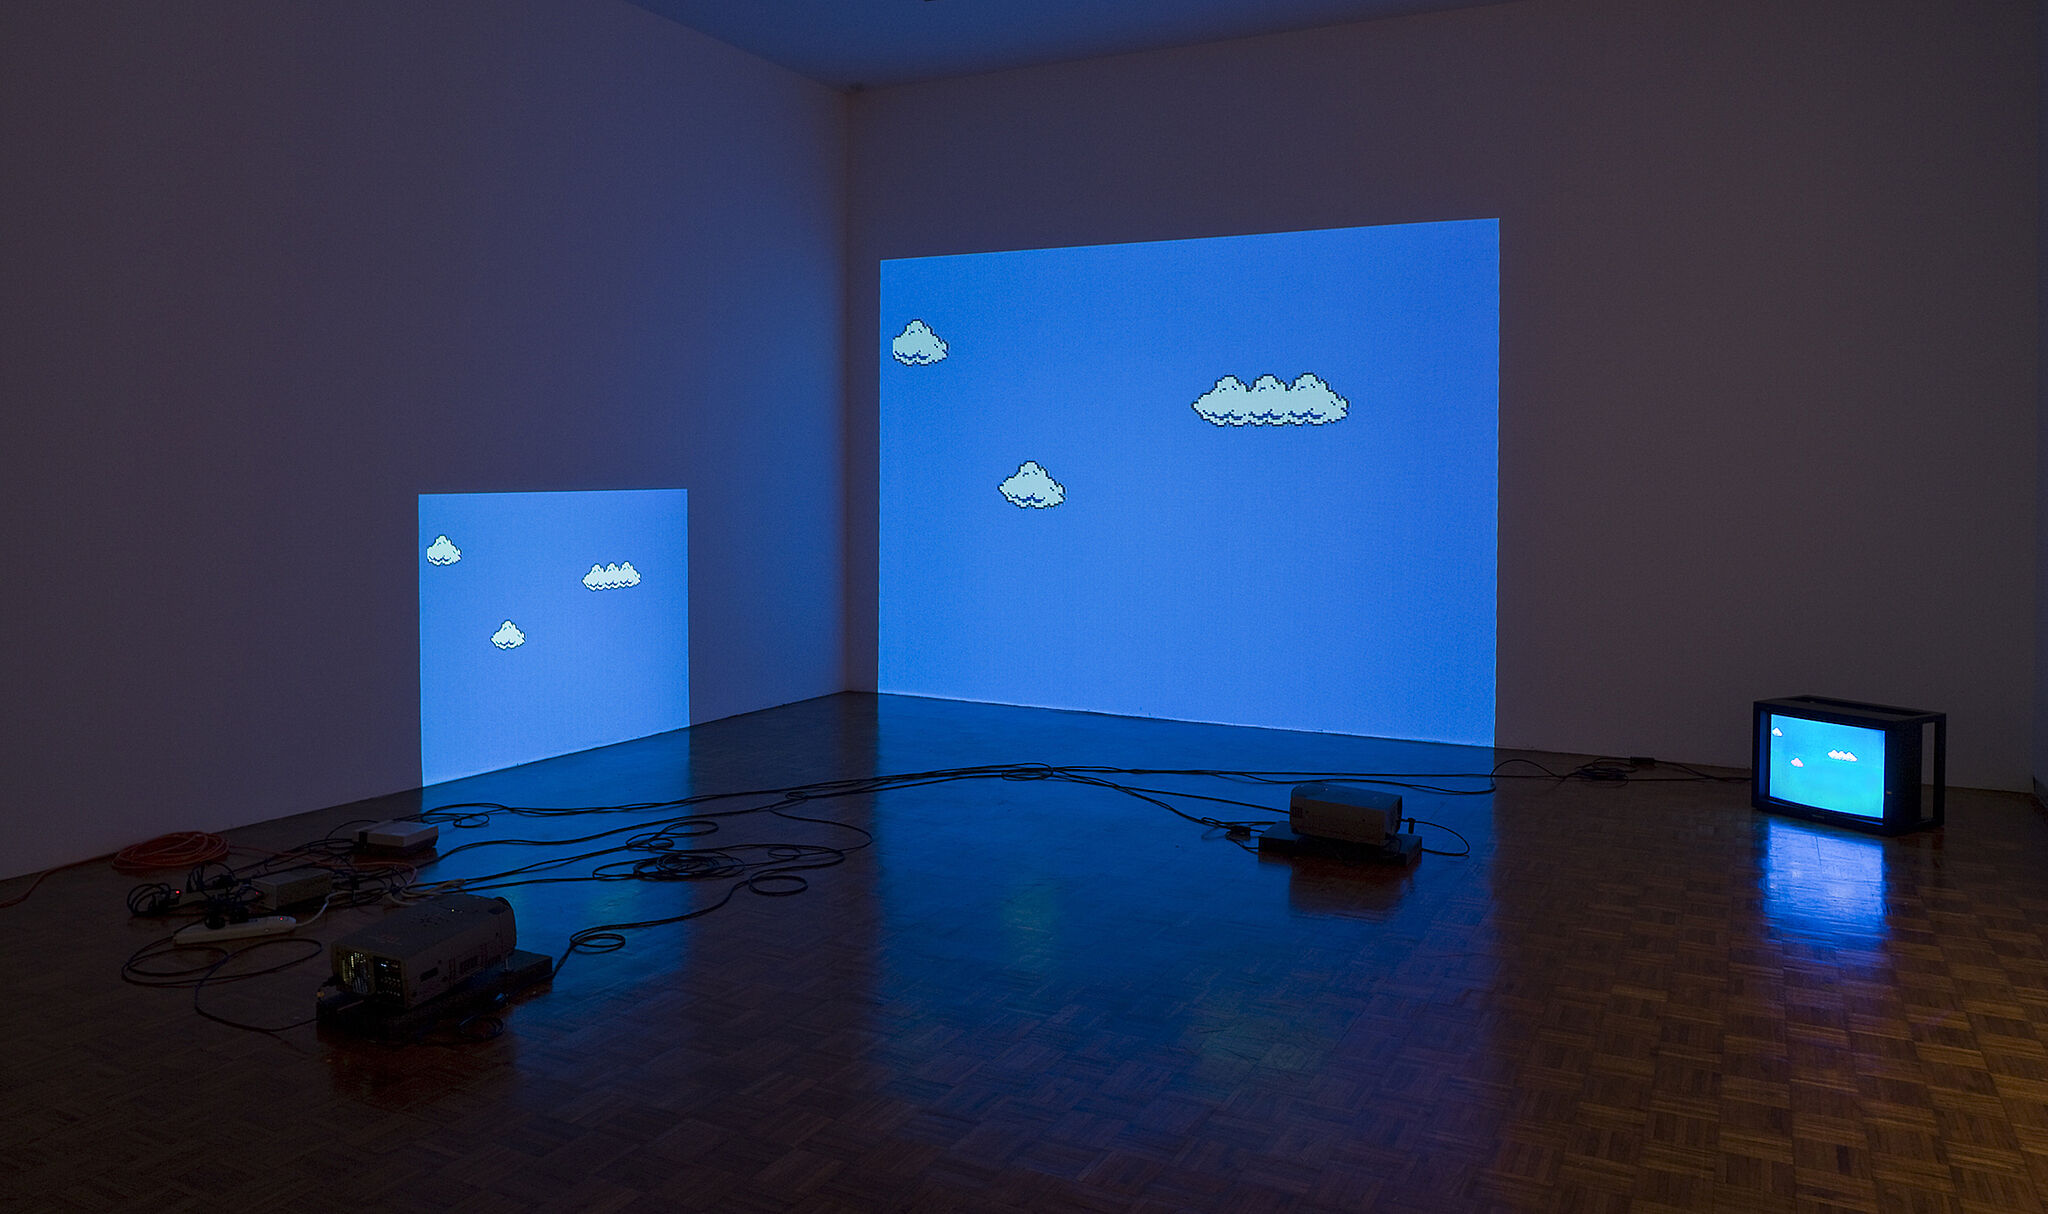 Projections on walls of mario clouds.